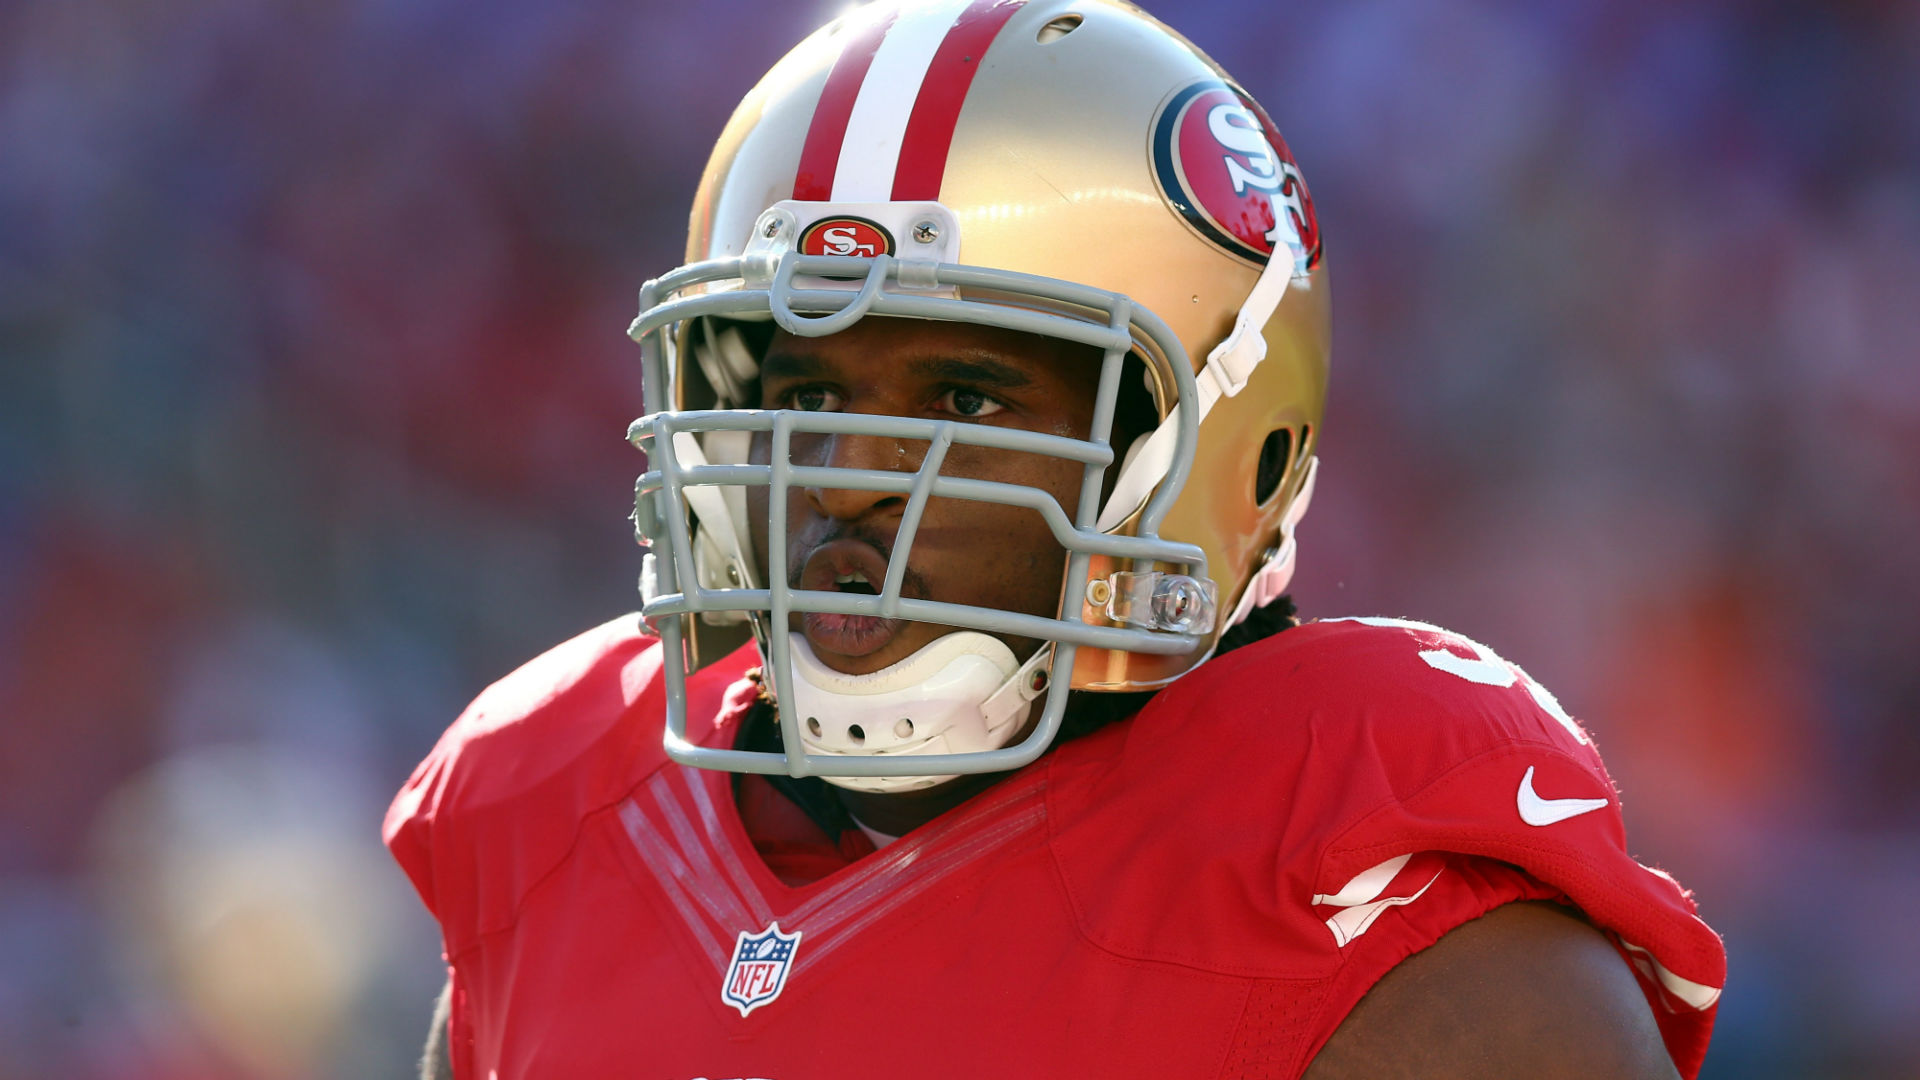 Ray McDonald released by Bears after domestic violence arrest